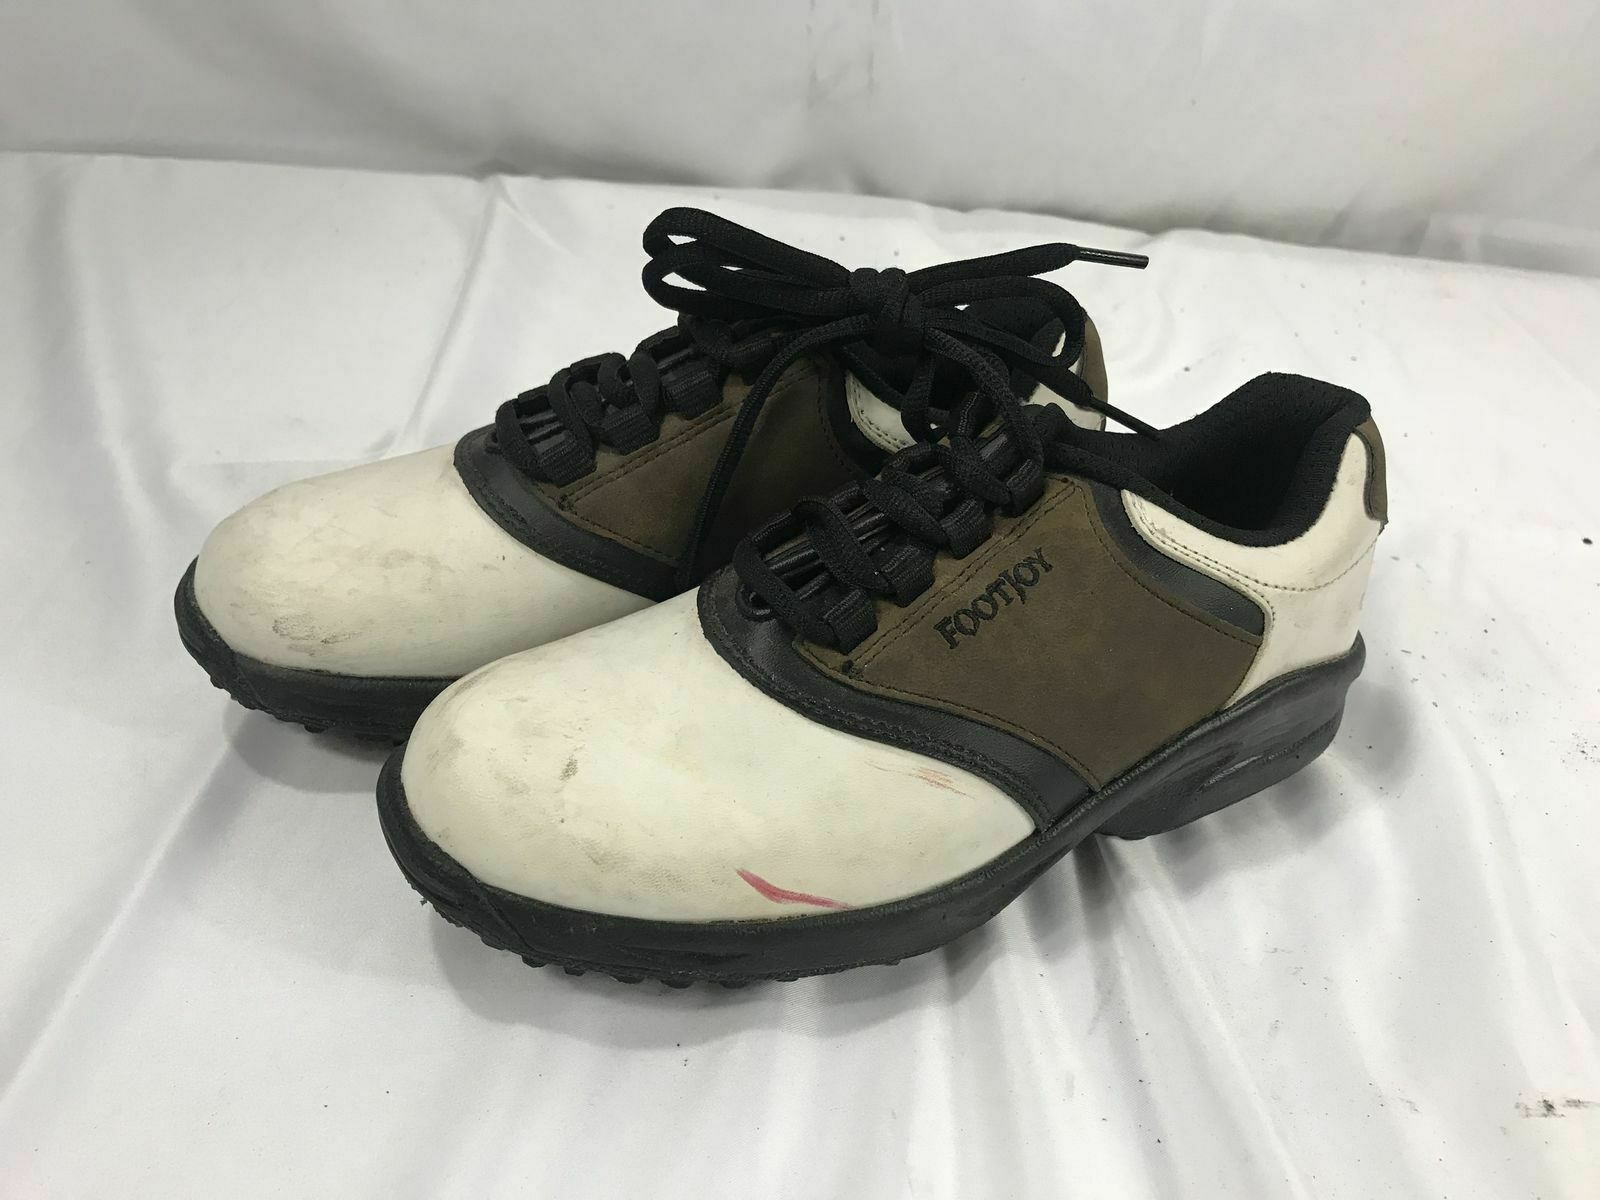 Primary image for Footjoy 3.0 Youth Size Golf Shoes